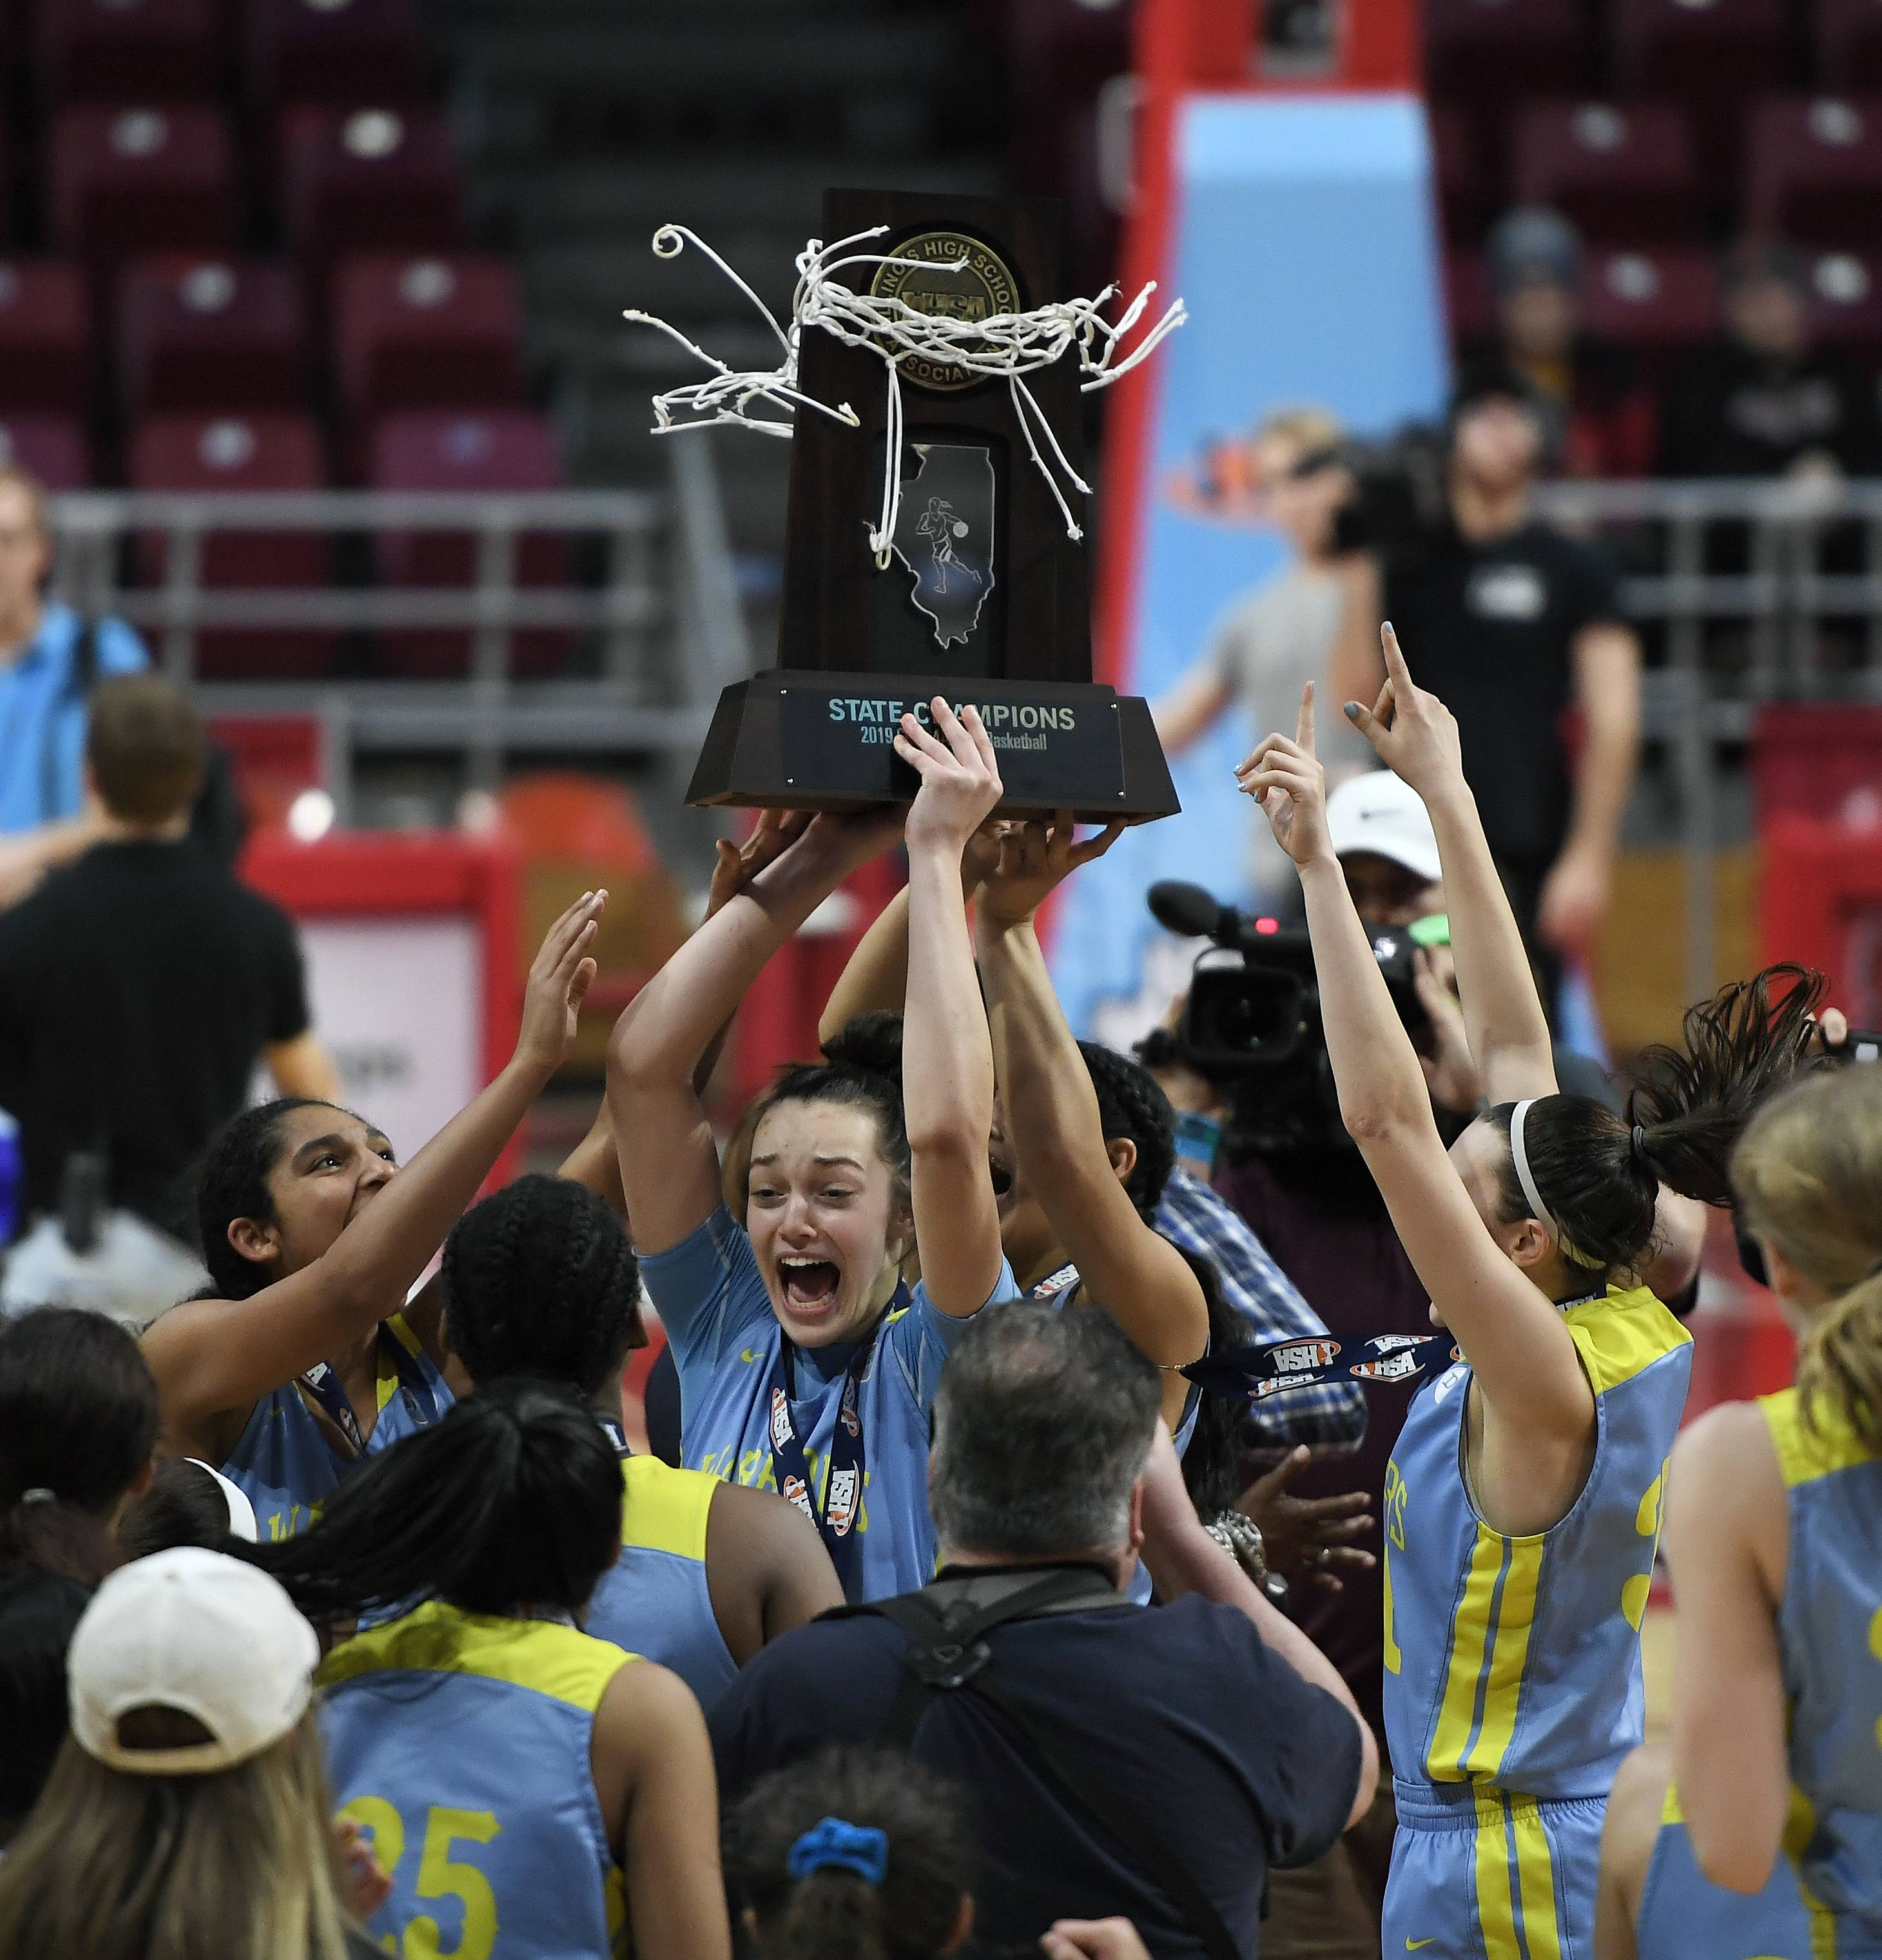 Maine West's Angela Dugalic holds up the first place trophy for her fans after they beat Mother McAuley 58-46 in the IHSA girls state basketball Class 4A finals at Normal on Friday.